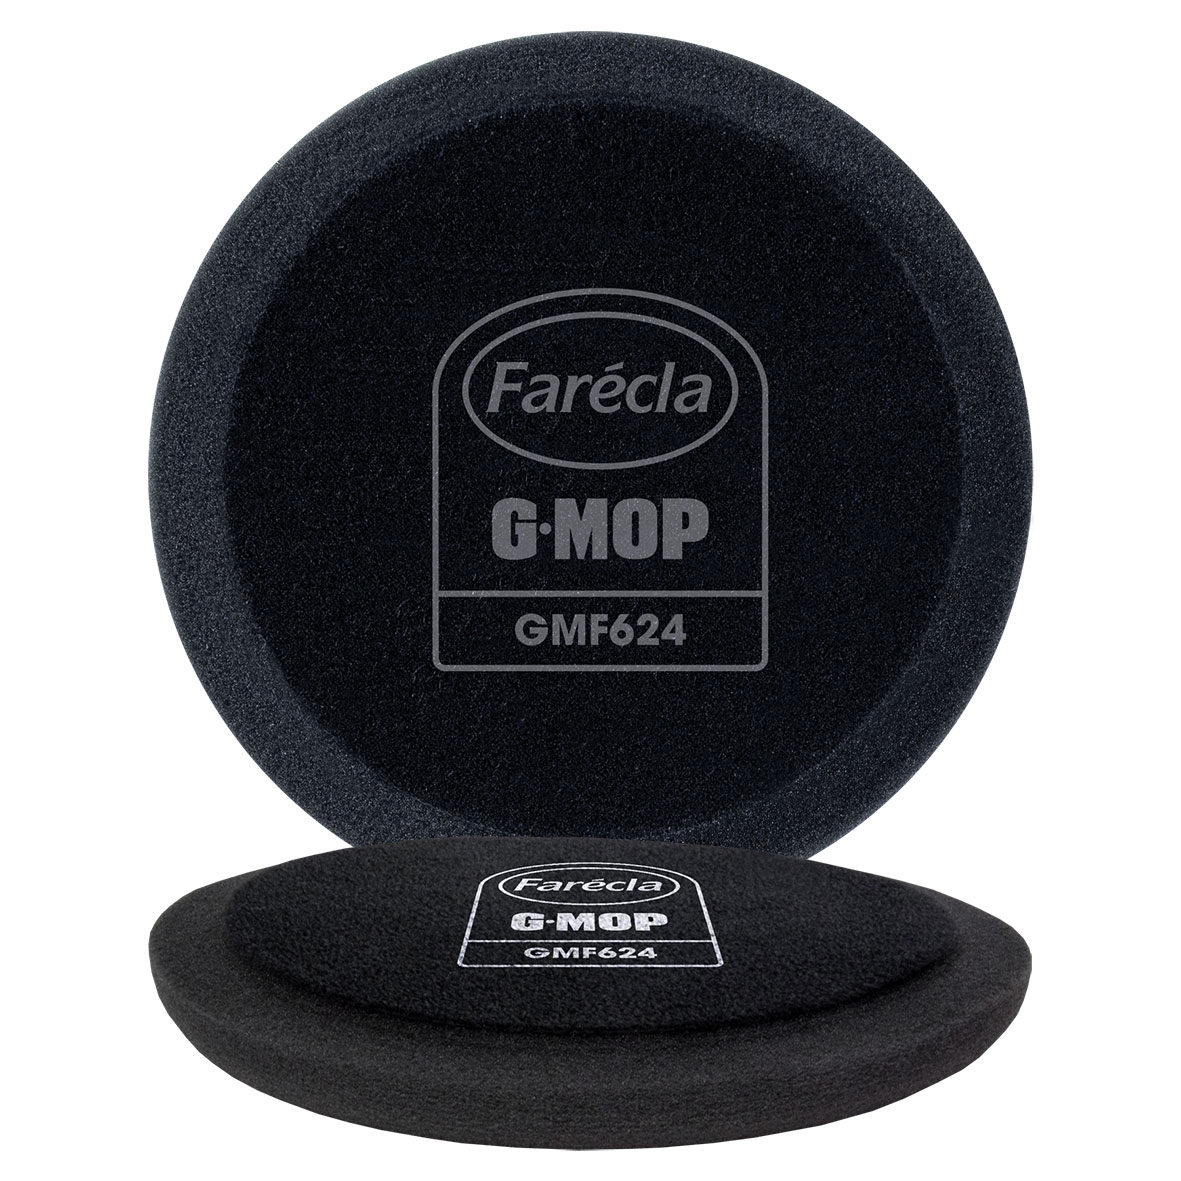 G Mop Flexible Black Finishing Foam